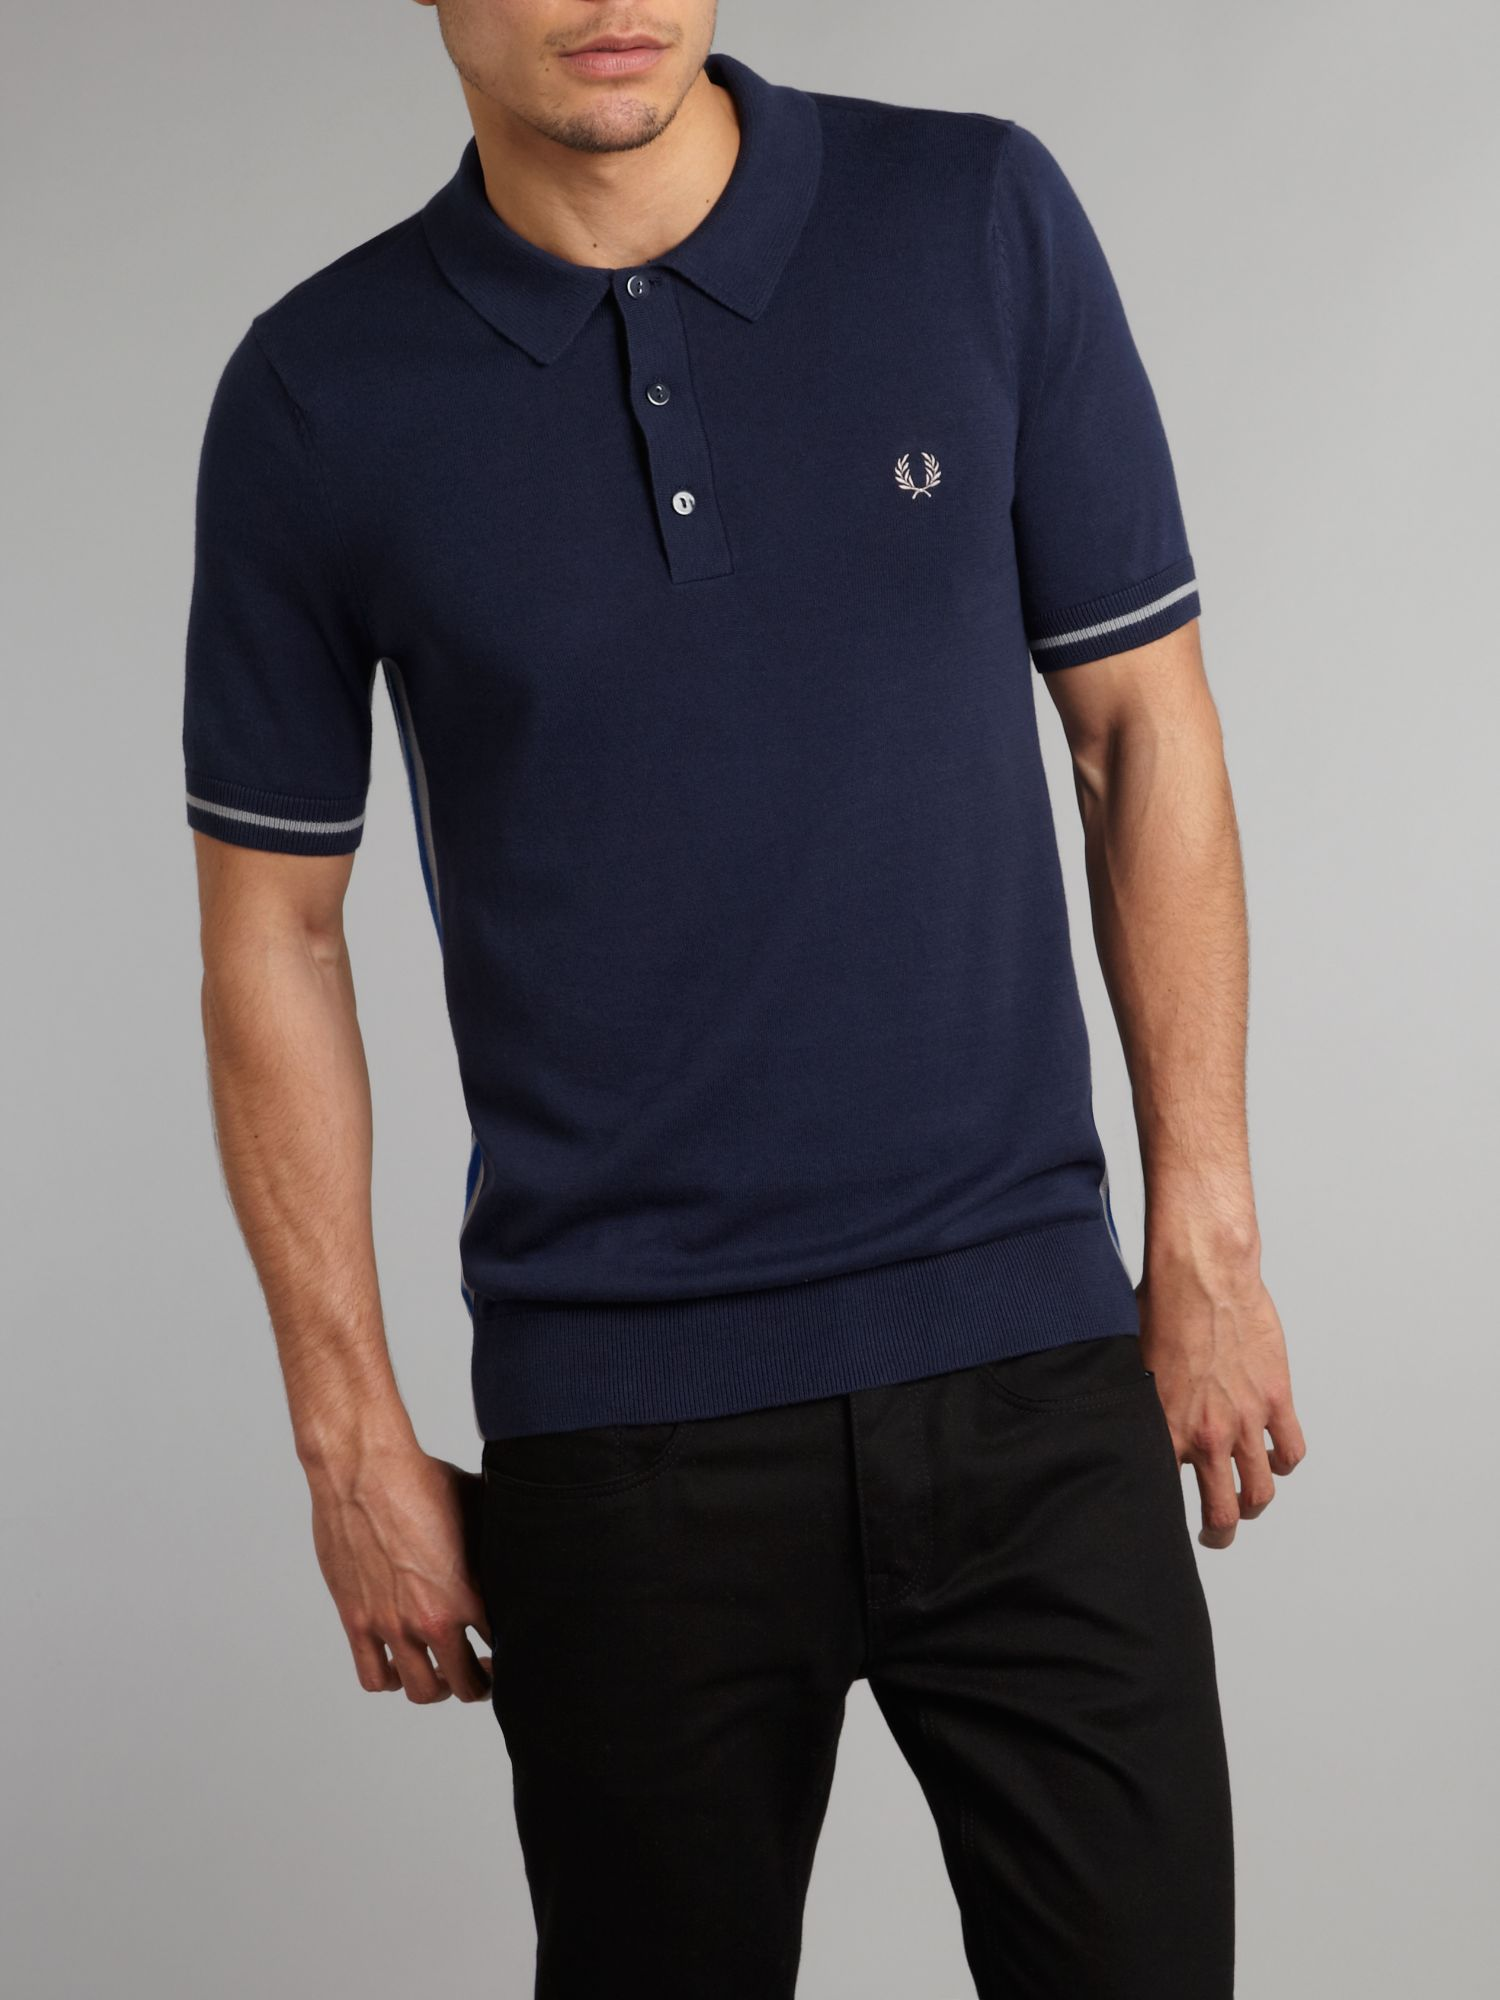 fred perry knitted cycling polo shirt in blue for men lyst. Black Bedroom Furniture Sets. Home Design Ideas